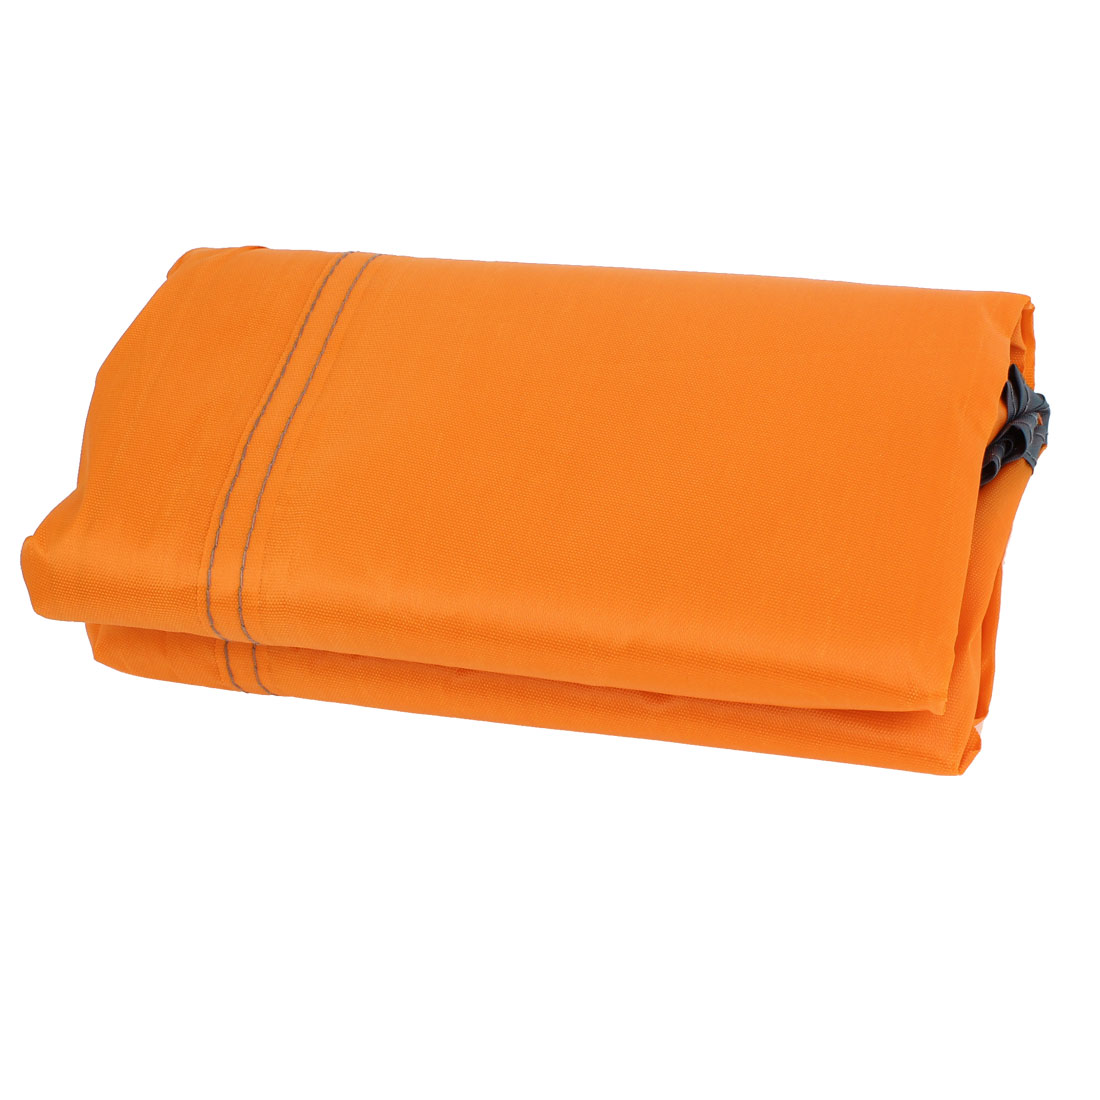 Portable Outdoor Camping Beach Picnic Rain Sun Shelter Tent Mat Cushion Orange 215cm x 215cm